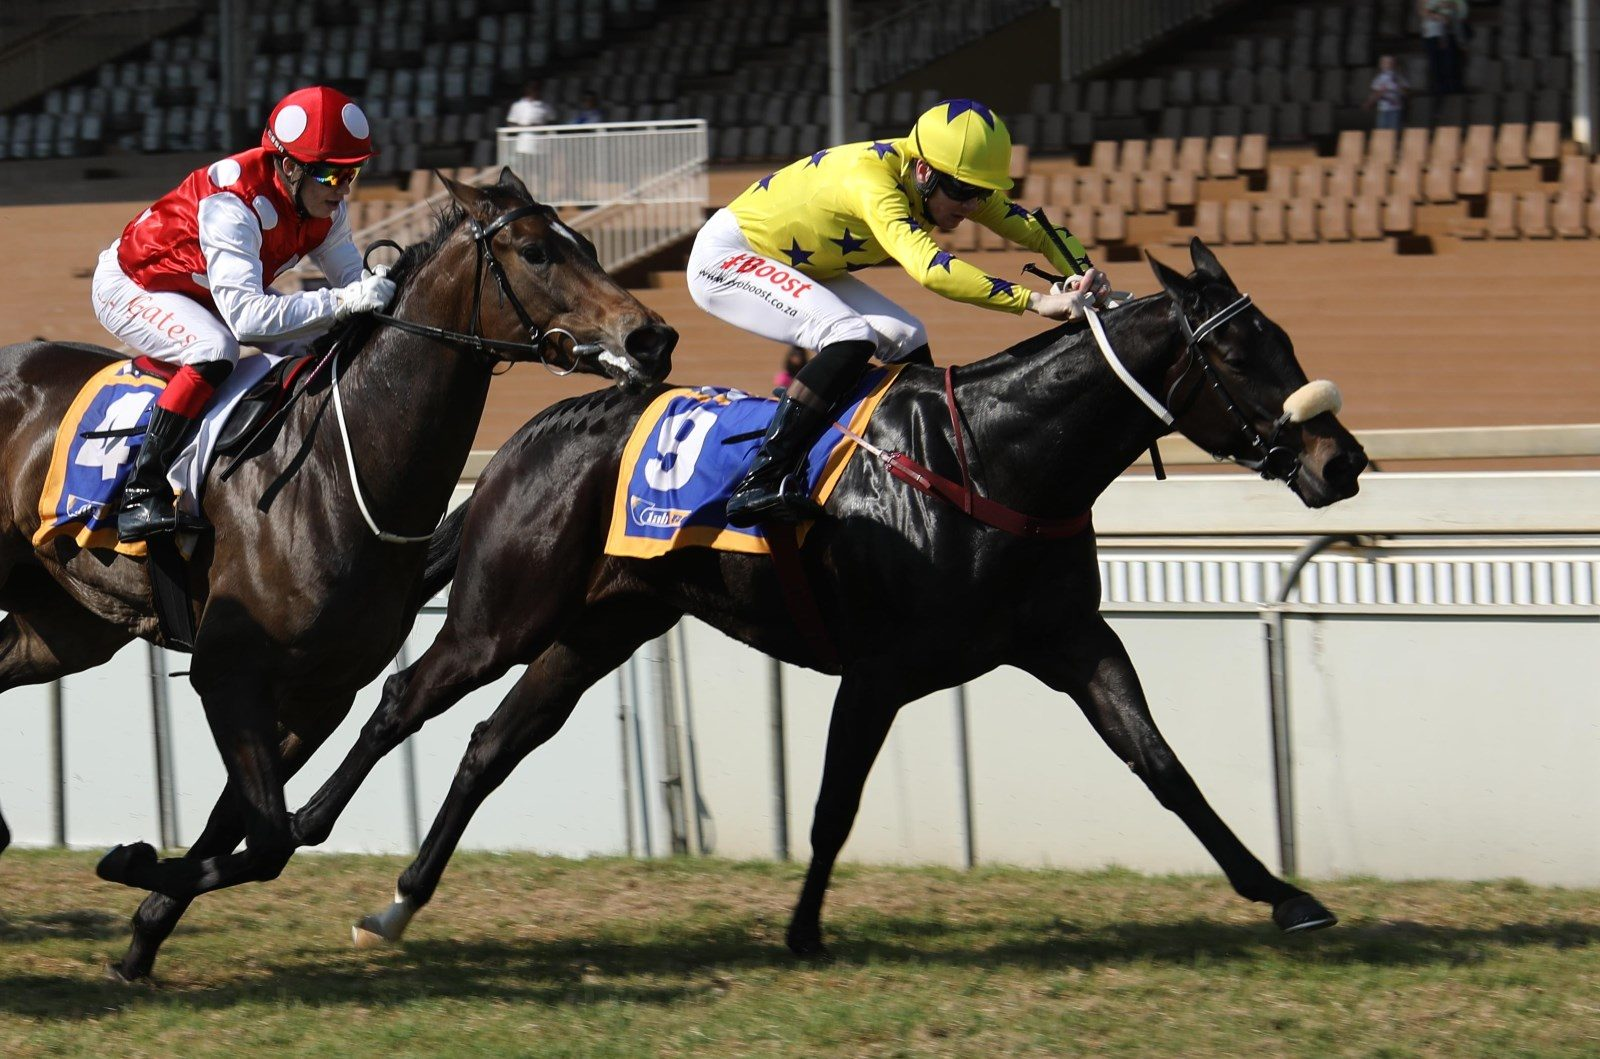 Mocha Rose winning at Scottsville in July 2018. Trained by Duncan Howells. Owned by the Hollywood Syndicate.